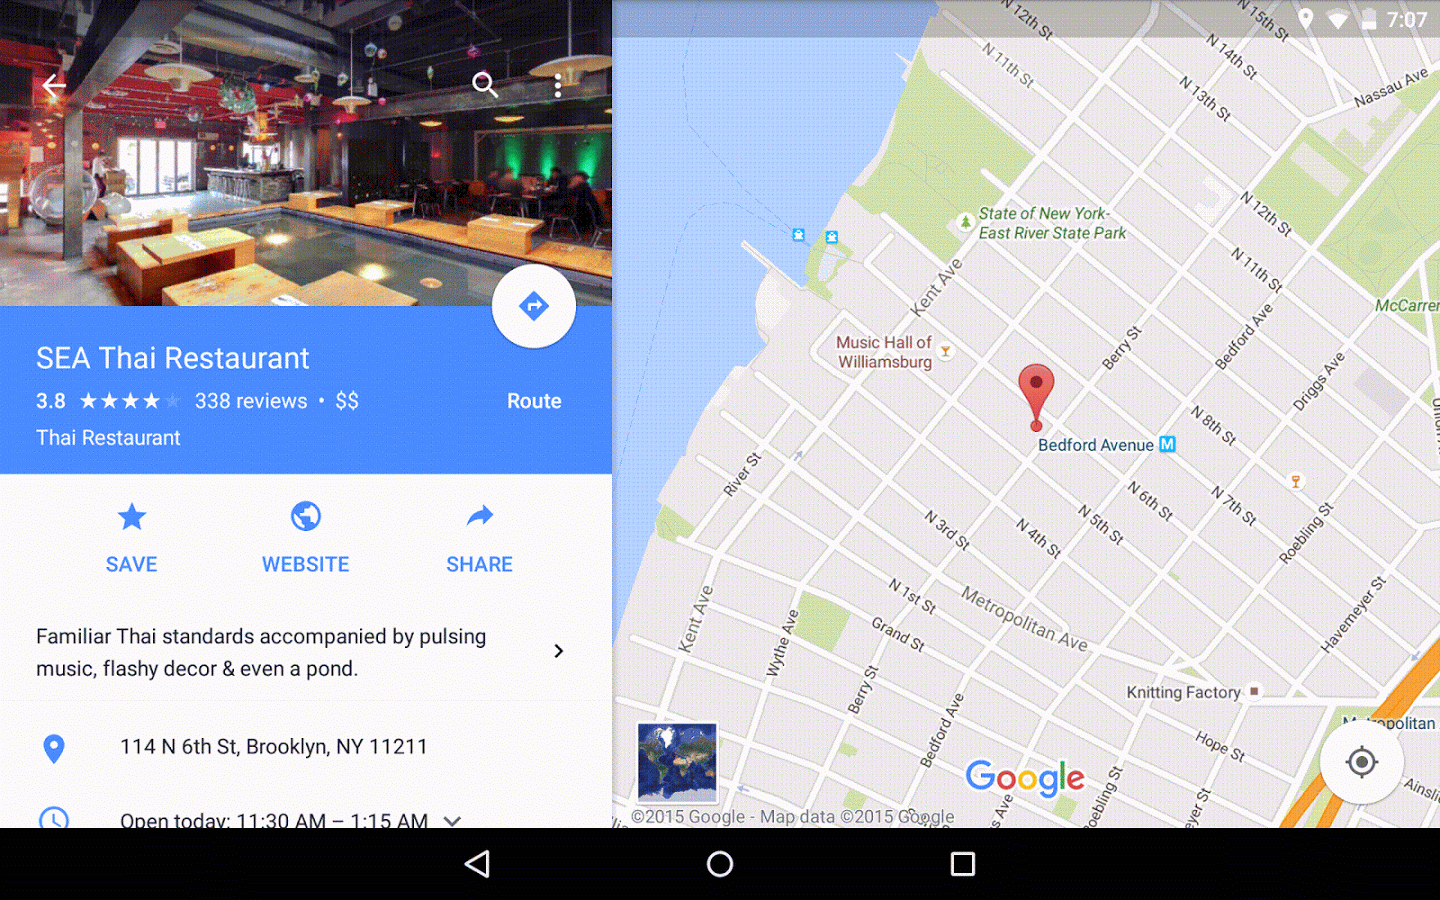 Google Maps for Android 10 12 2 free download - Software reviews